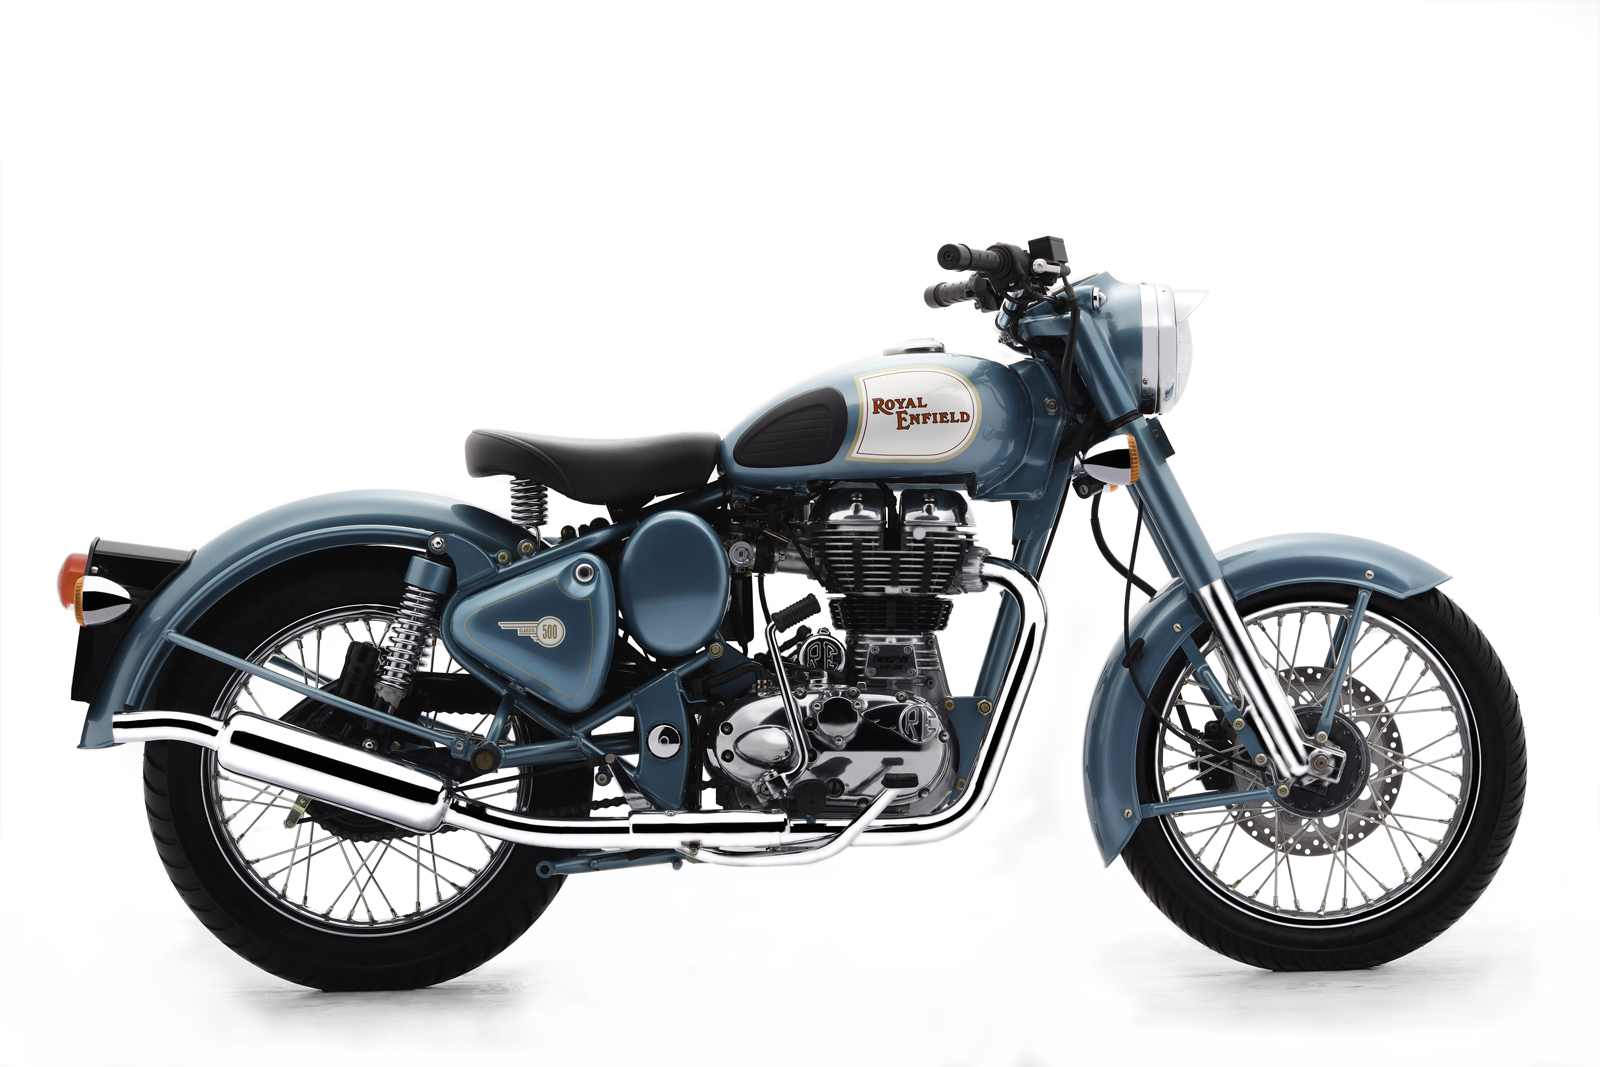 Royal enfield bullett photo - 10